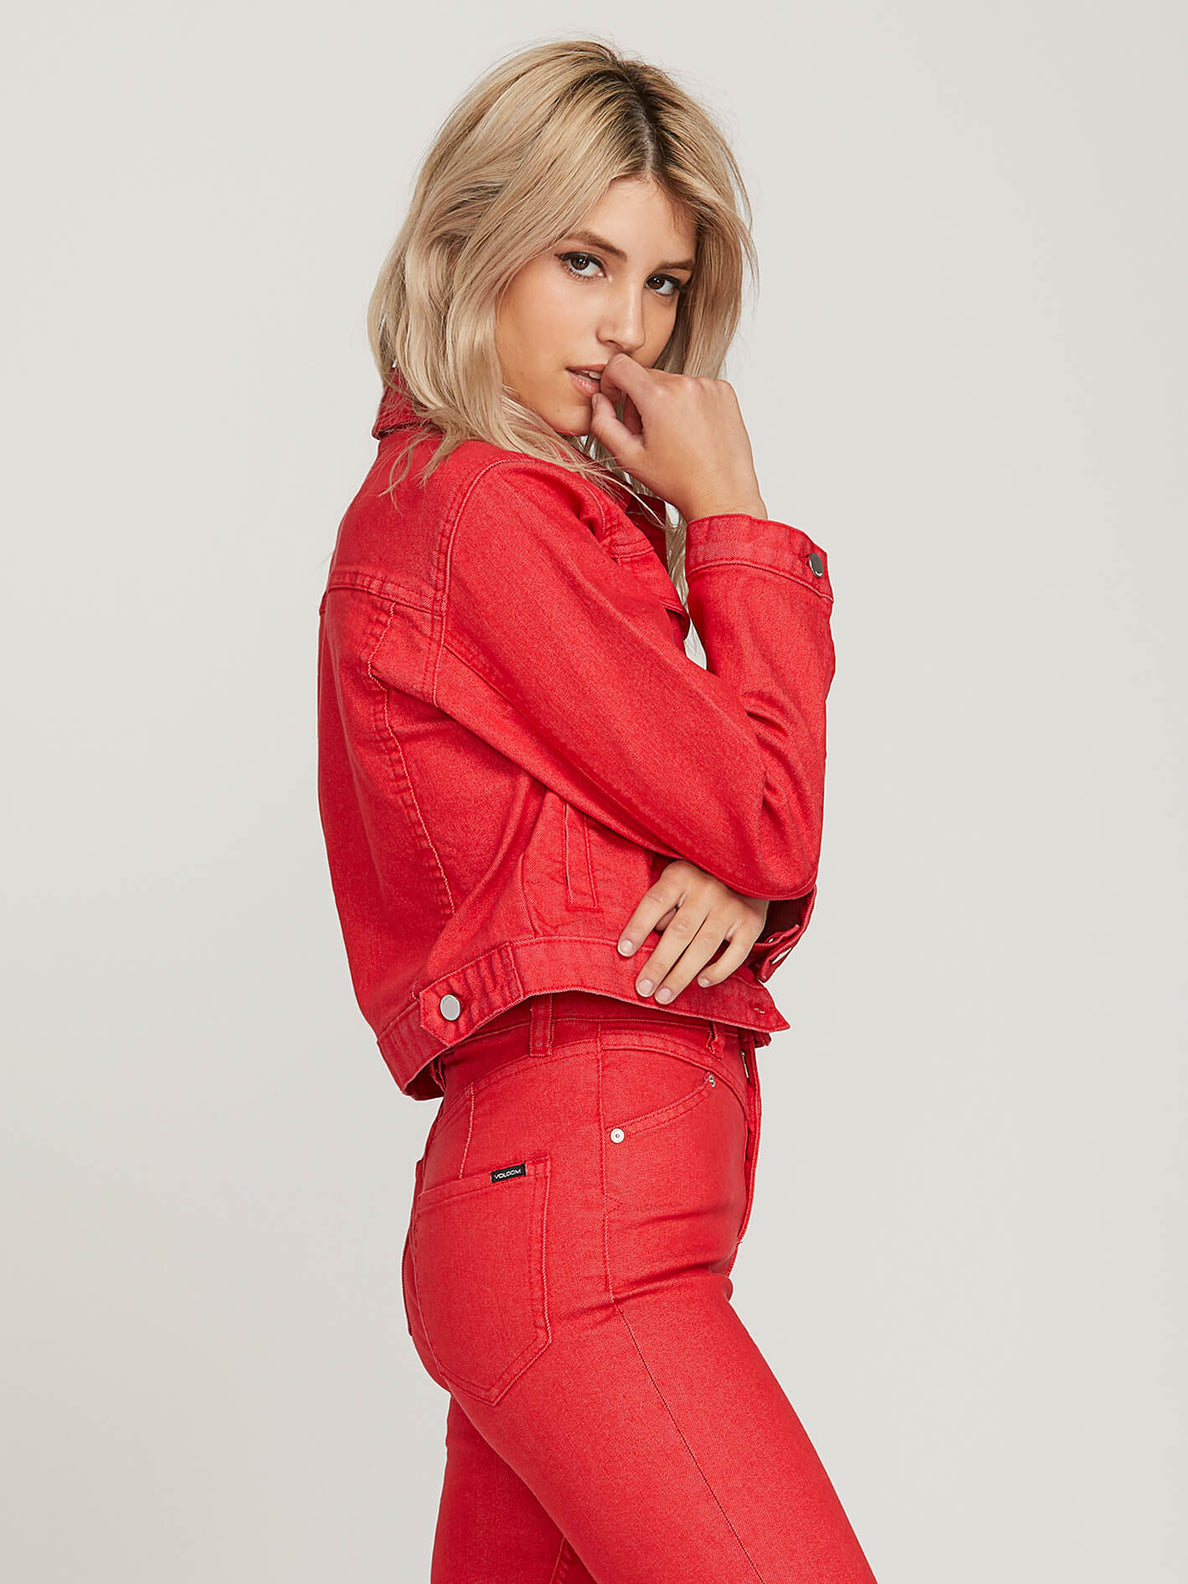 Gmj Shrunken Jacket In Red, Alternate View